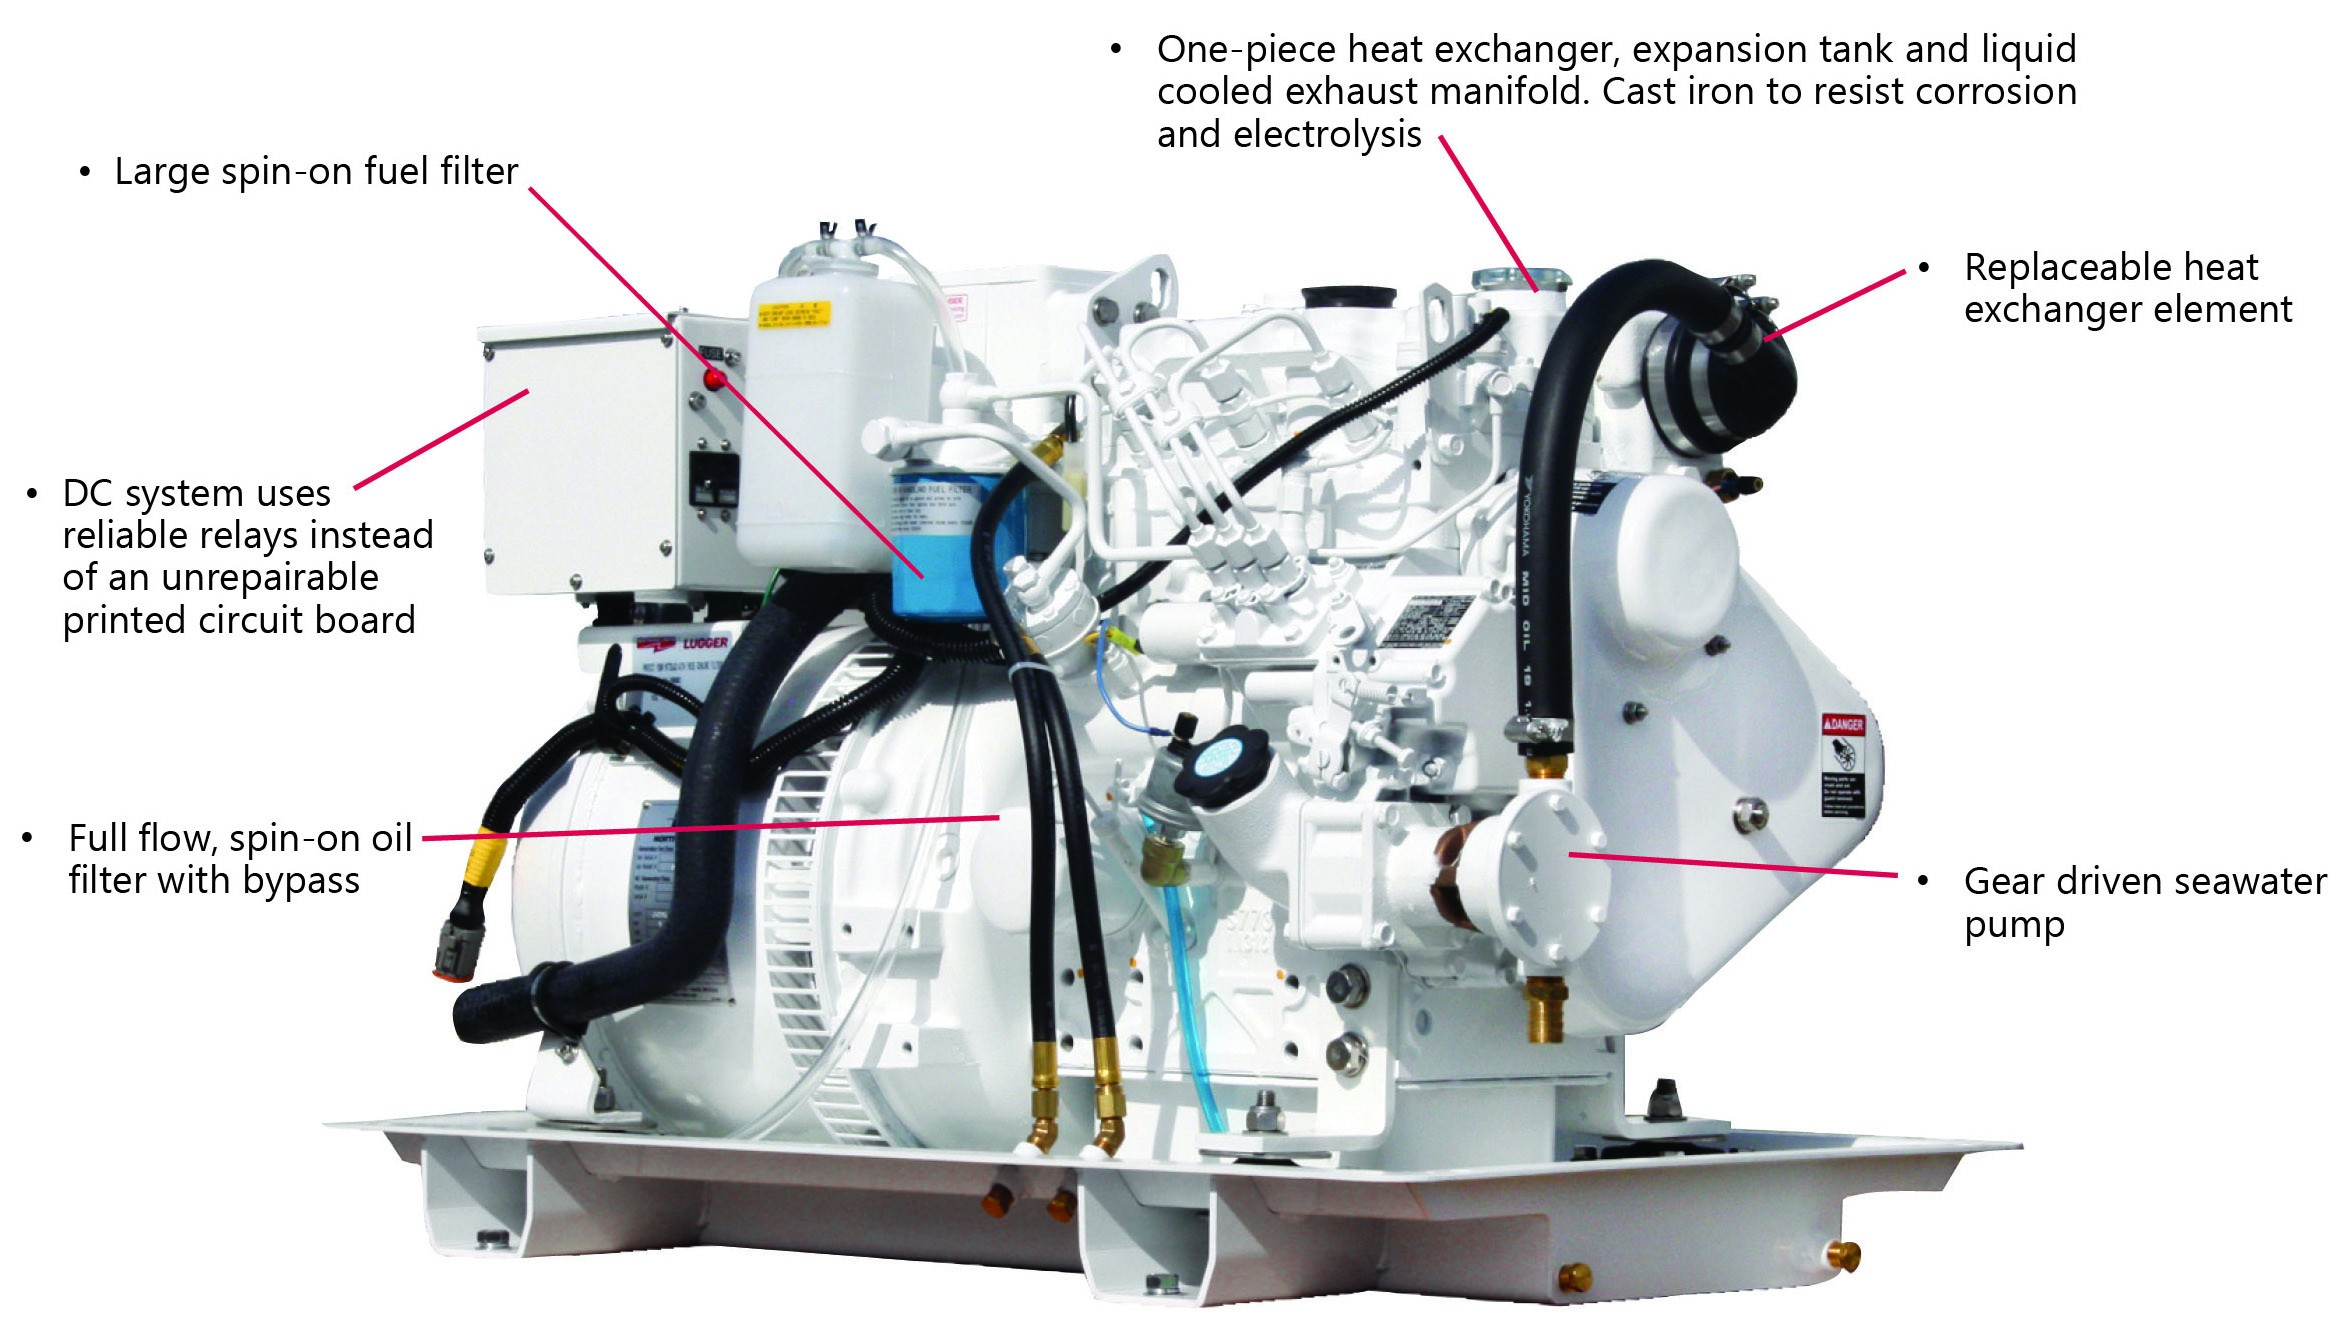 Main Engine Lube Oil System Diagram M773lw3 9 7 Kw – northern Lights Marine Generators and Technicold Of Main Engine Lube Oil System Diagram